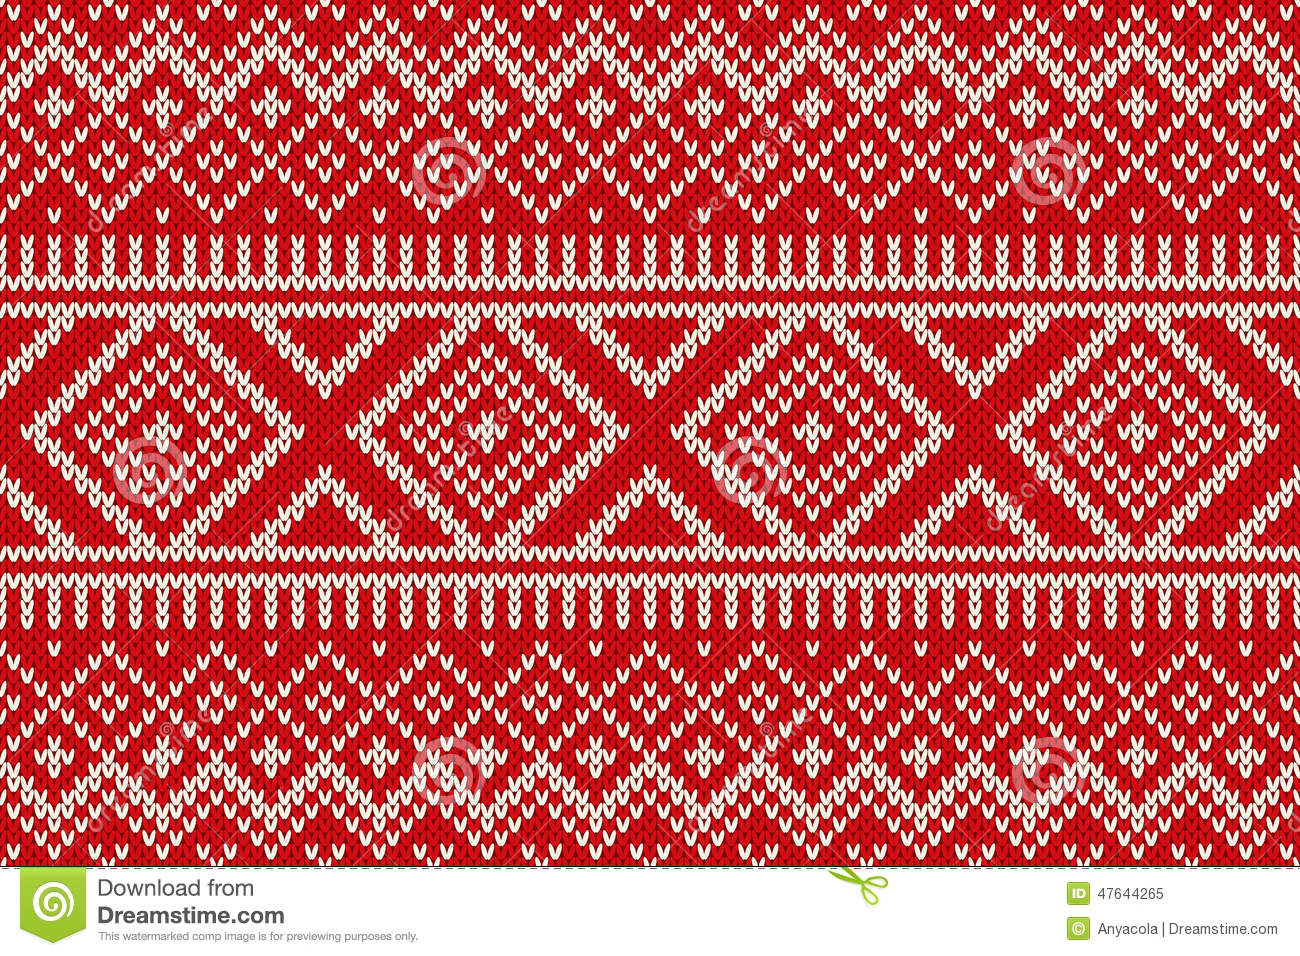 Nordic traditional fair isle style seamless knitted pattern stock nordic traditional fair isle style seamless knitted pattern royalty free vector bankloansurffo Gallery